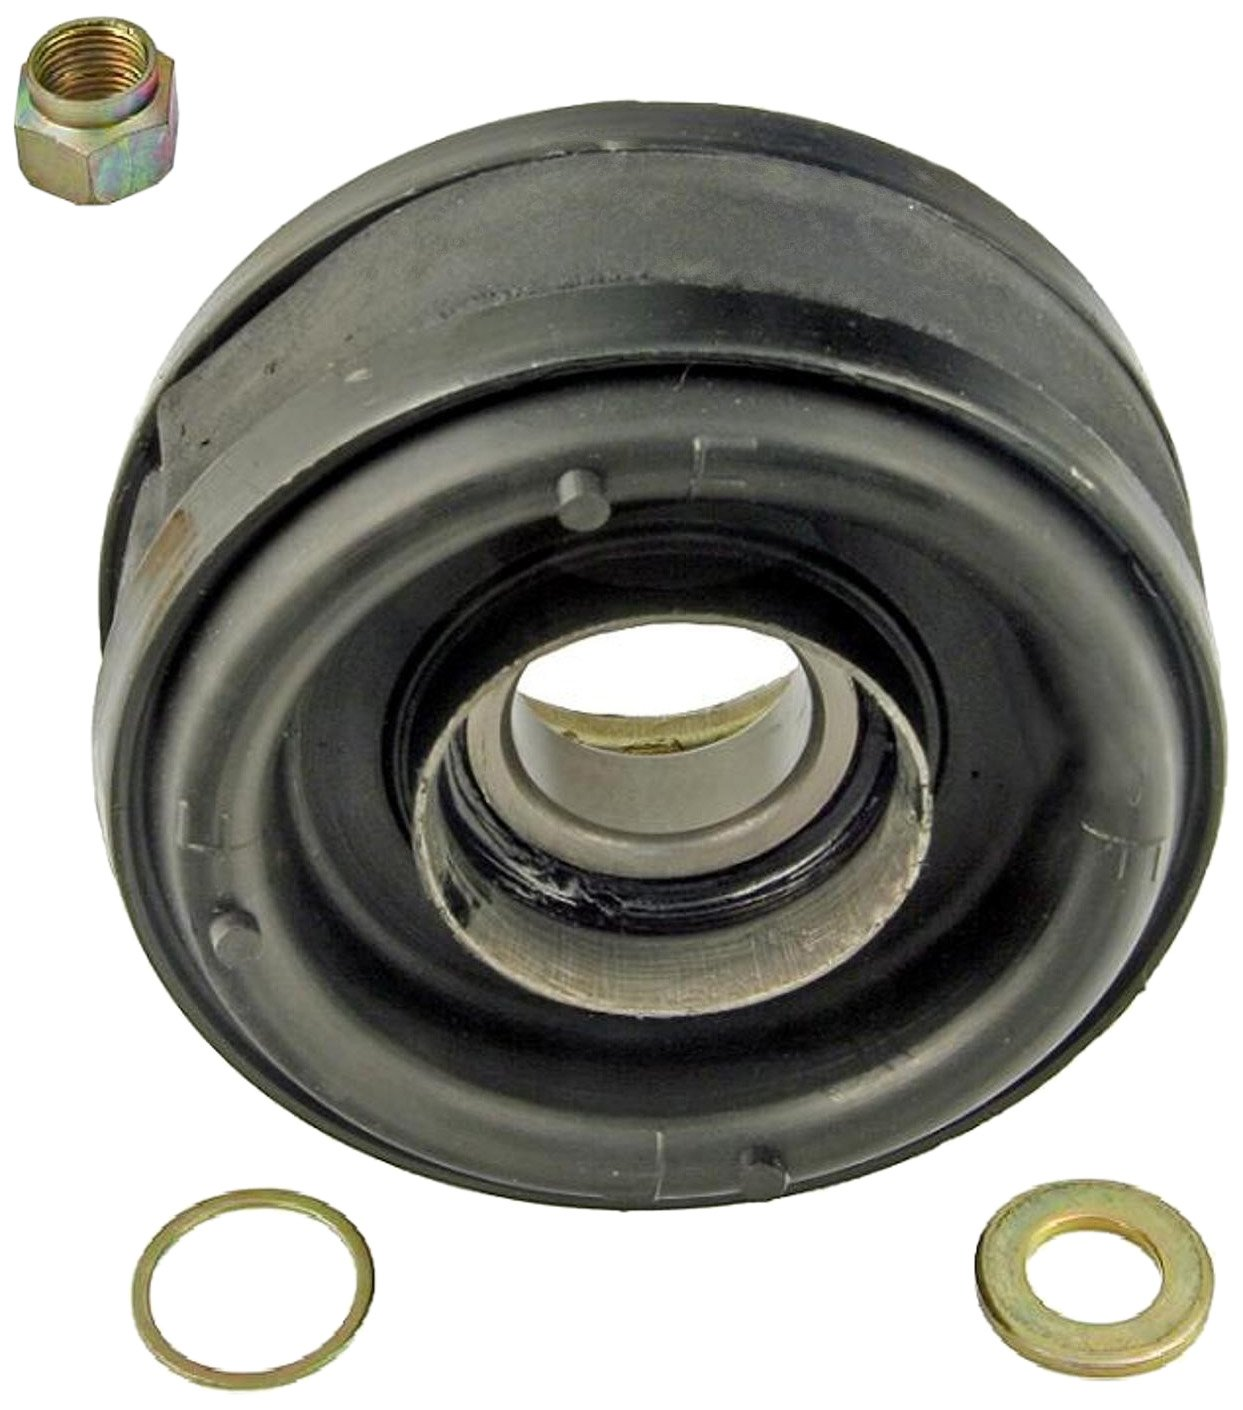 Precision HB6 Drive Shaft Center Support (Hanger) Bearing